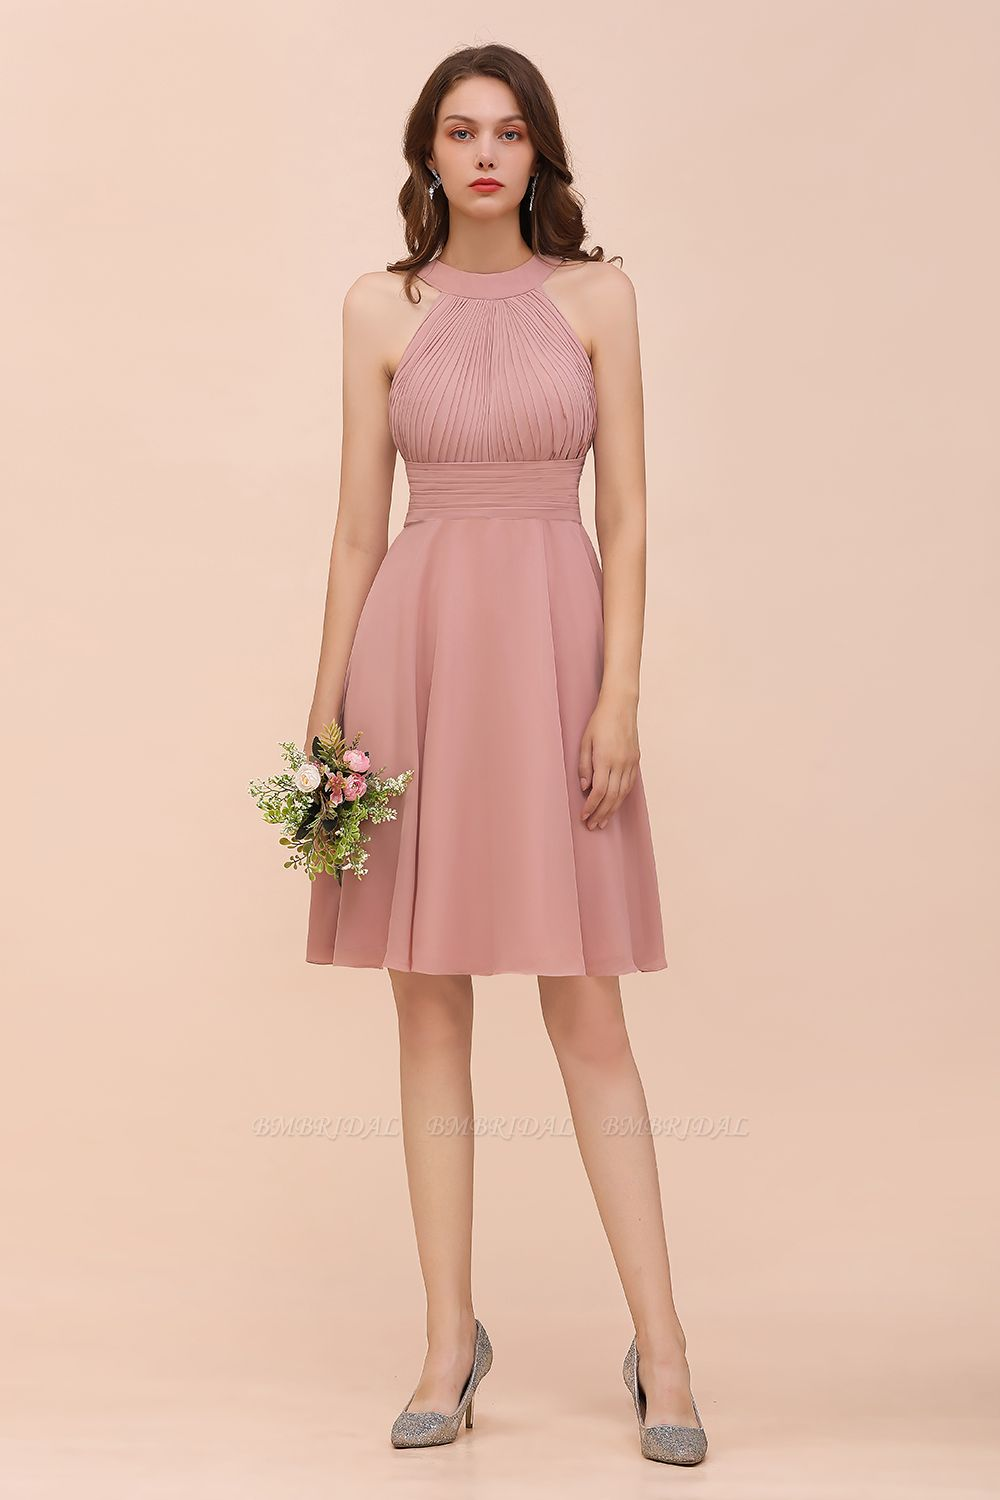 Affordable Dusty Pink Round Neck Ruffle Short Bridesmaid Dresses Online